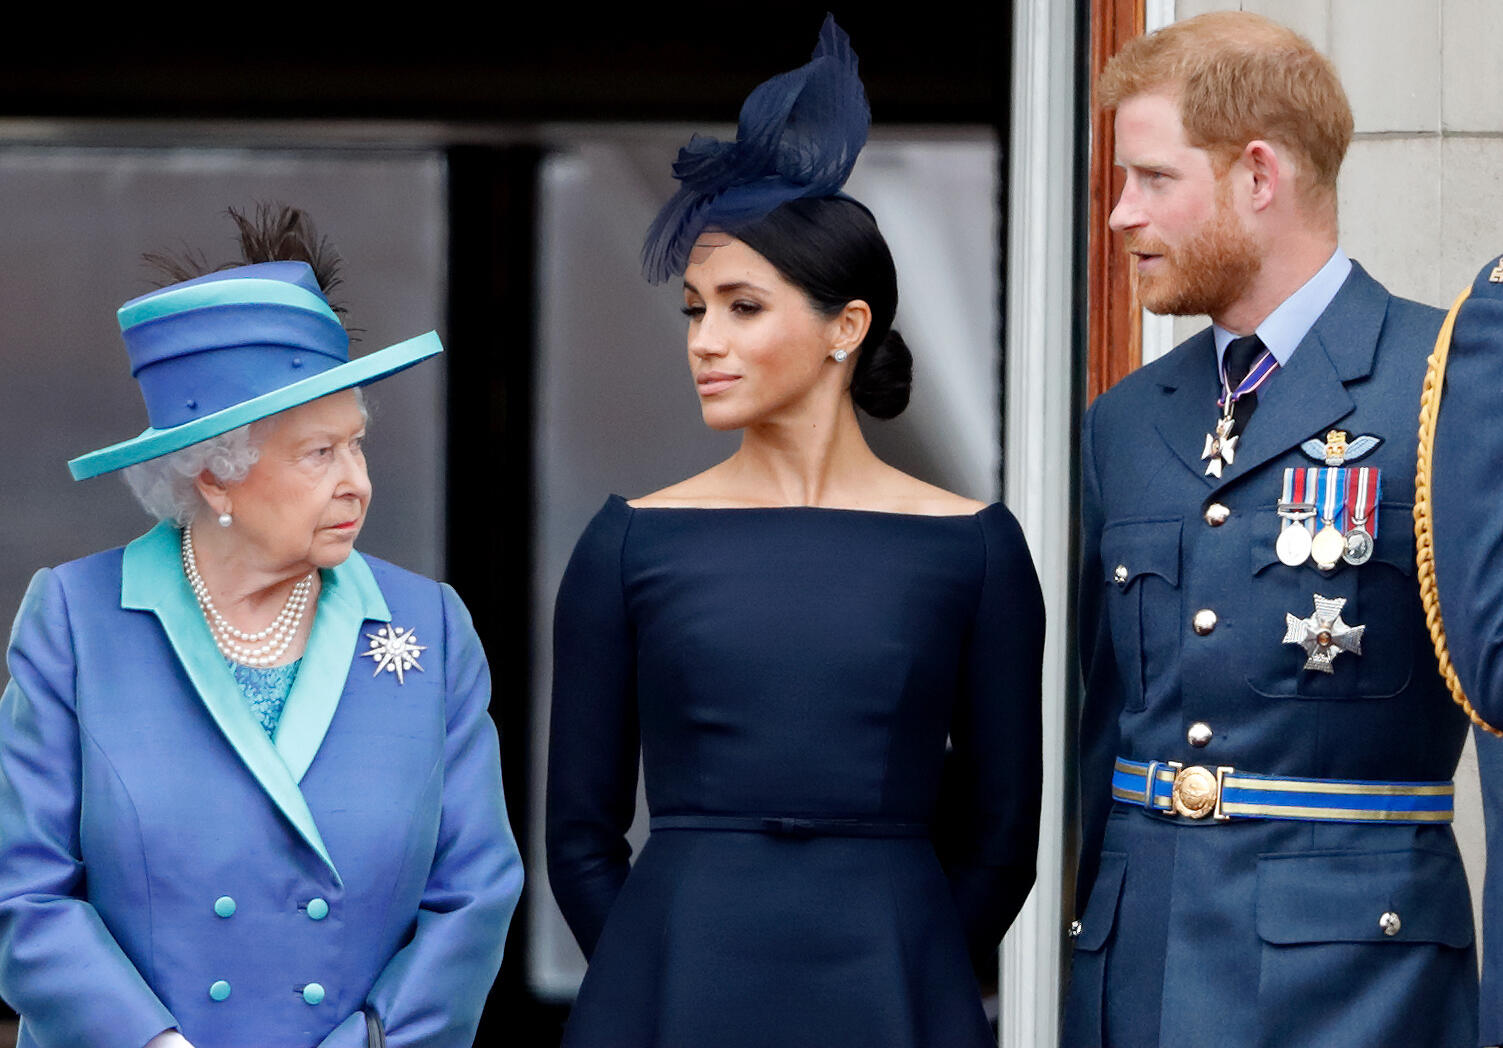 204: 06/10/21 - Meghan Markle & Prince Harry Deny Claims That They Used Queen Elizabeth's Nickname Lilibet Without Her Approval